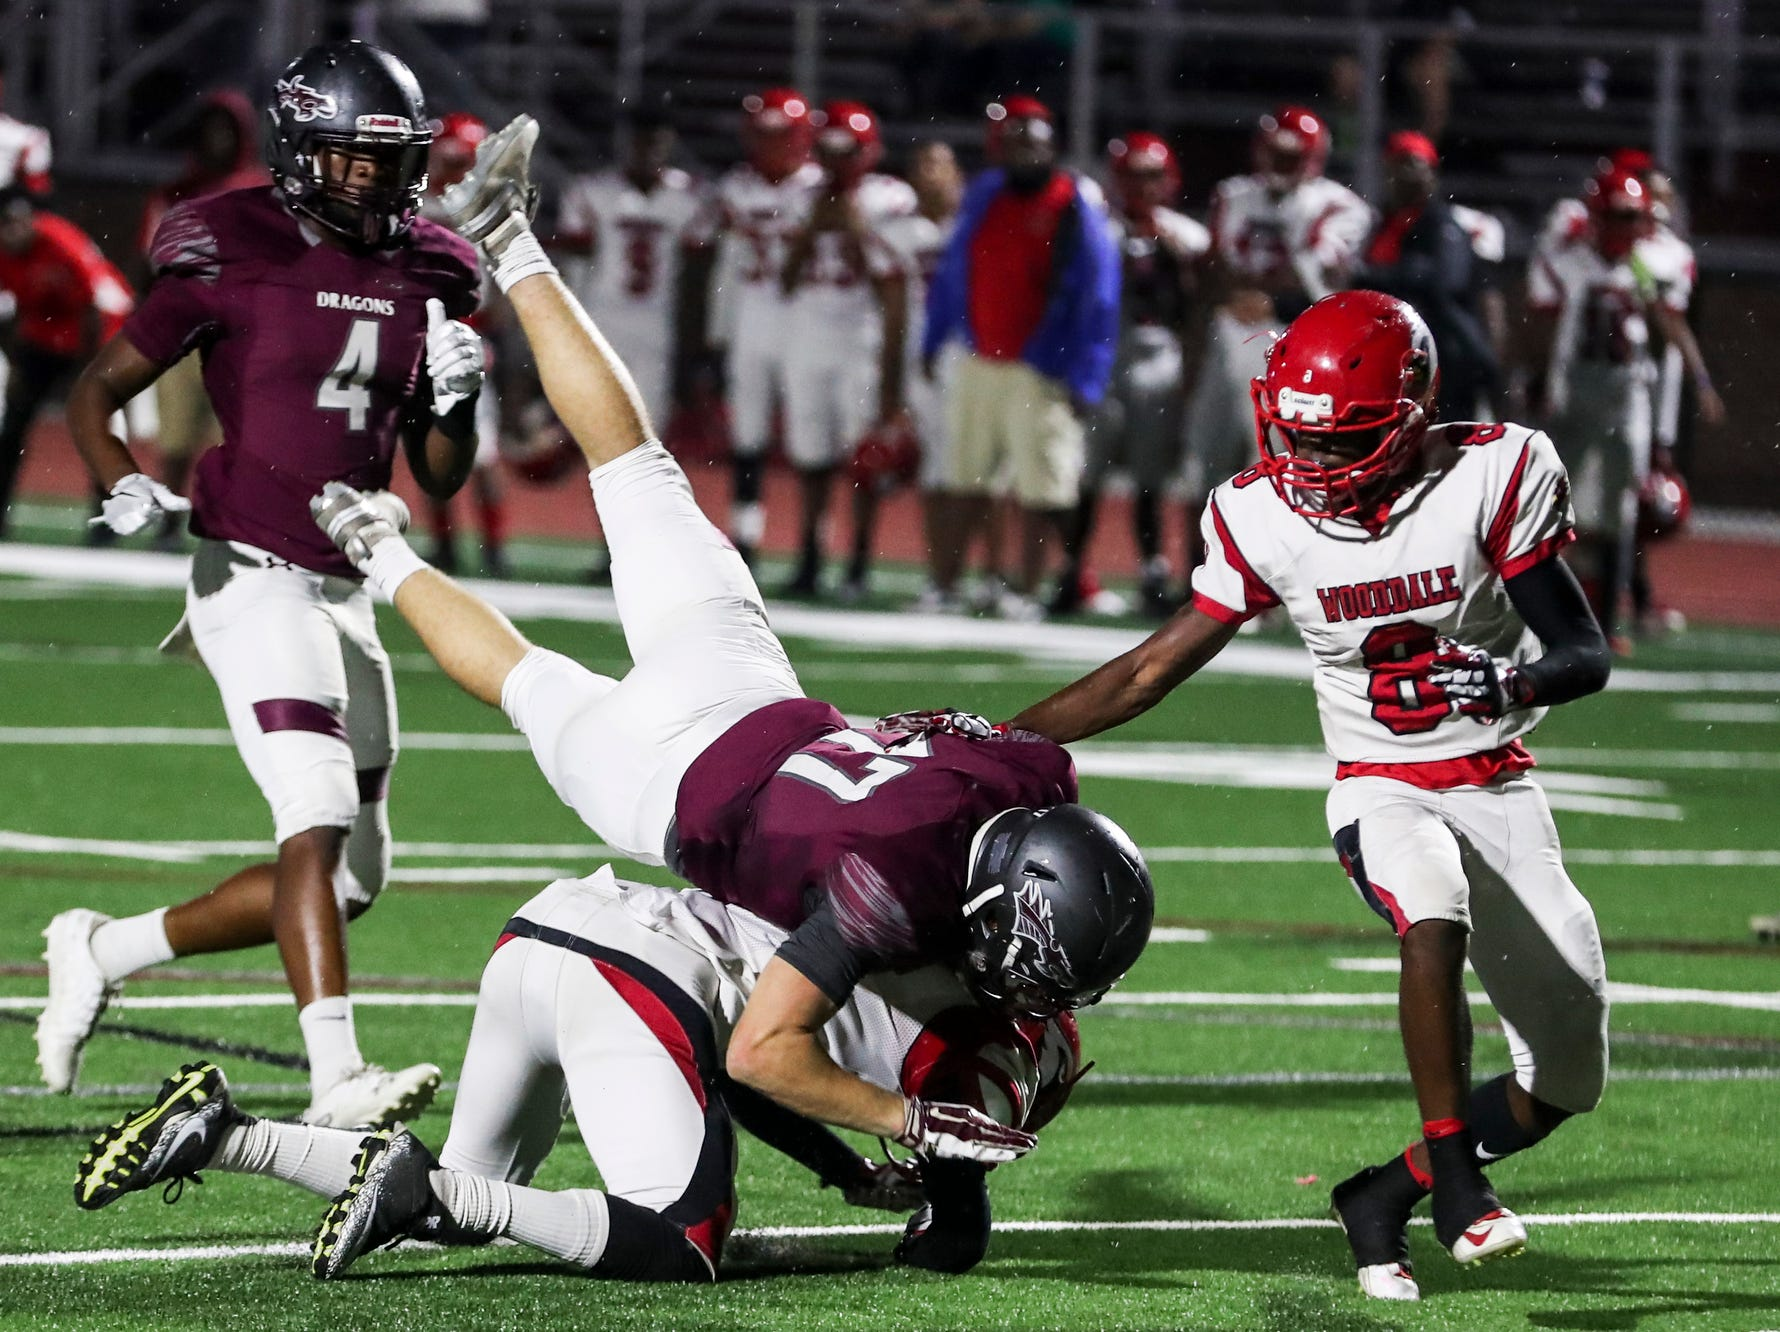 September 21 2018 - Collierville's Cade Cupp is tripped up while running during Friday night's game versus Wooddale at Collierville High School.